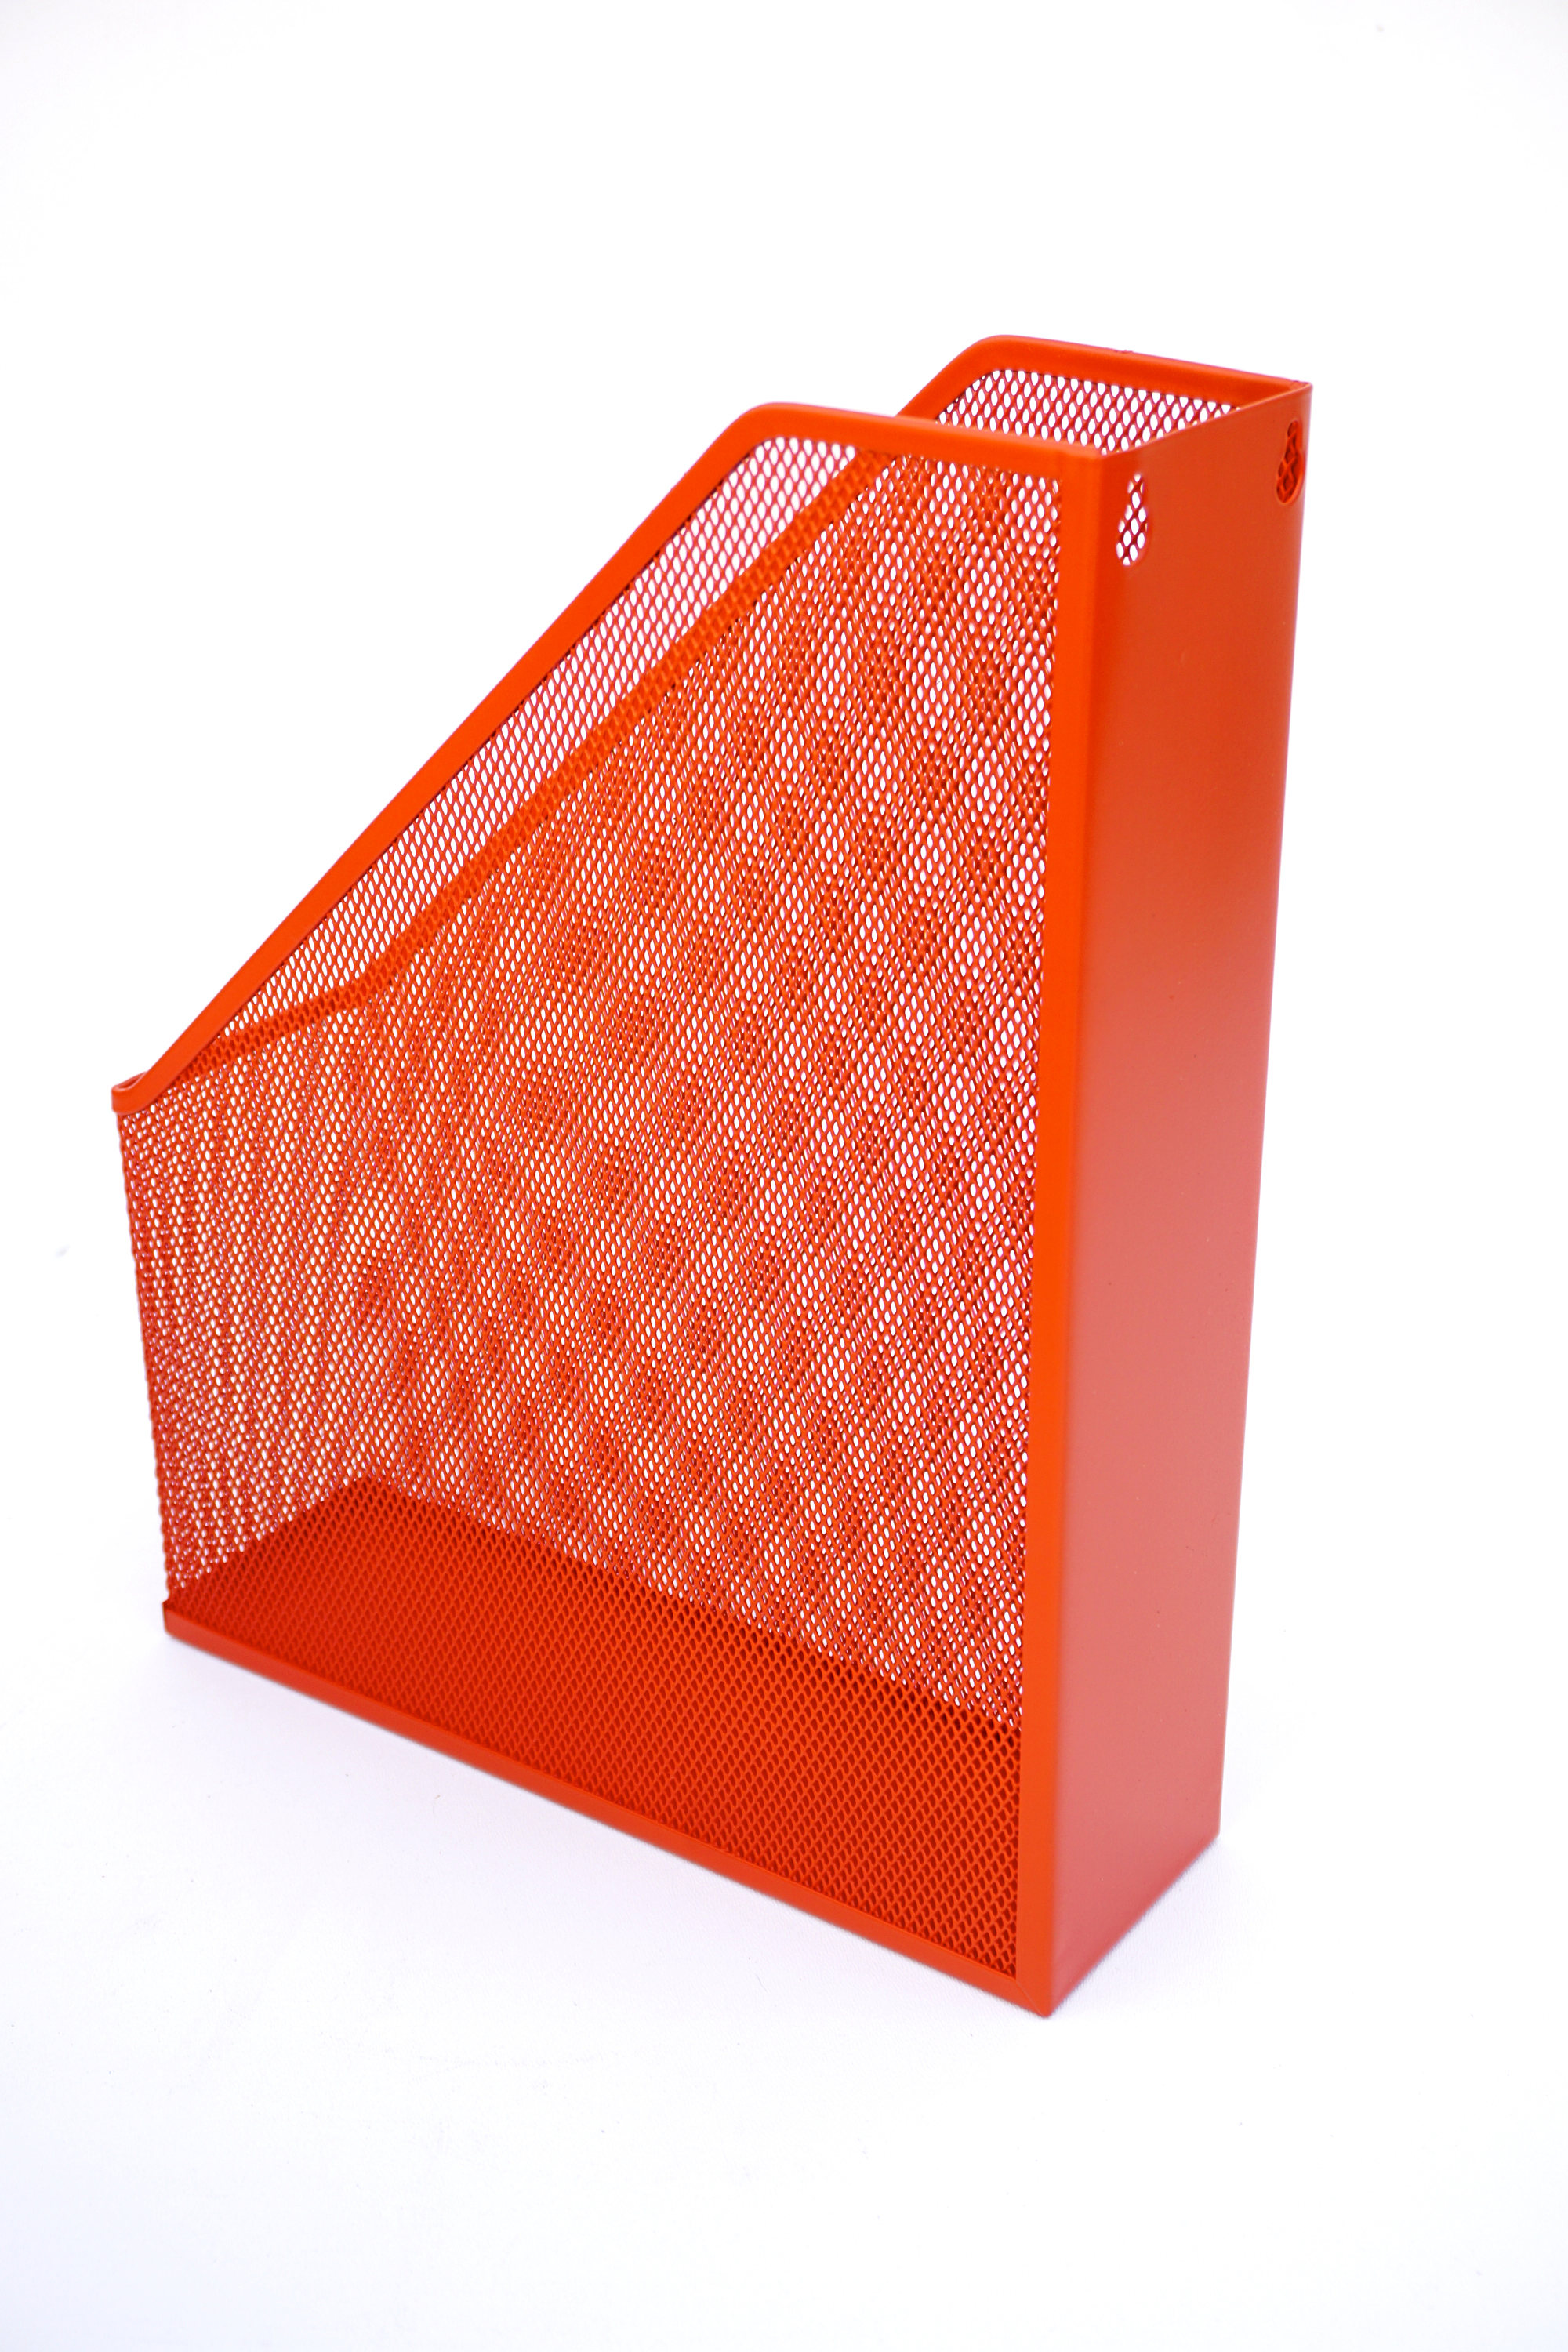 FIRE ORANGE Retro MODERN Industrial Metal Office Organizer Set Color ...